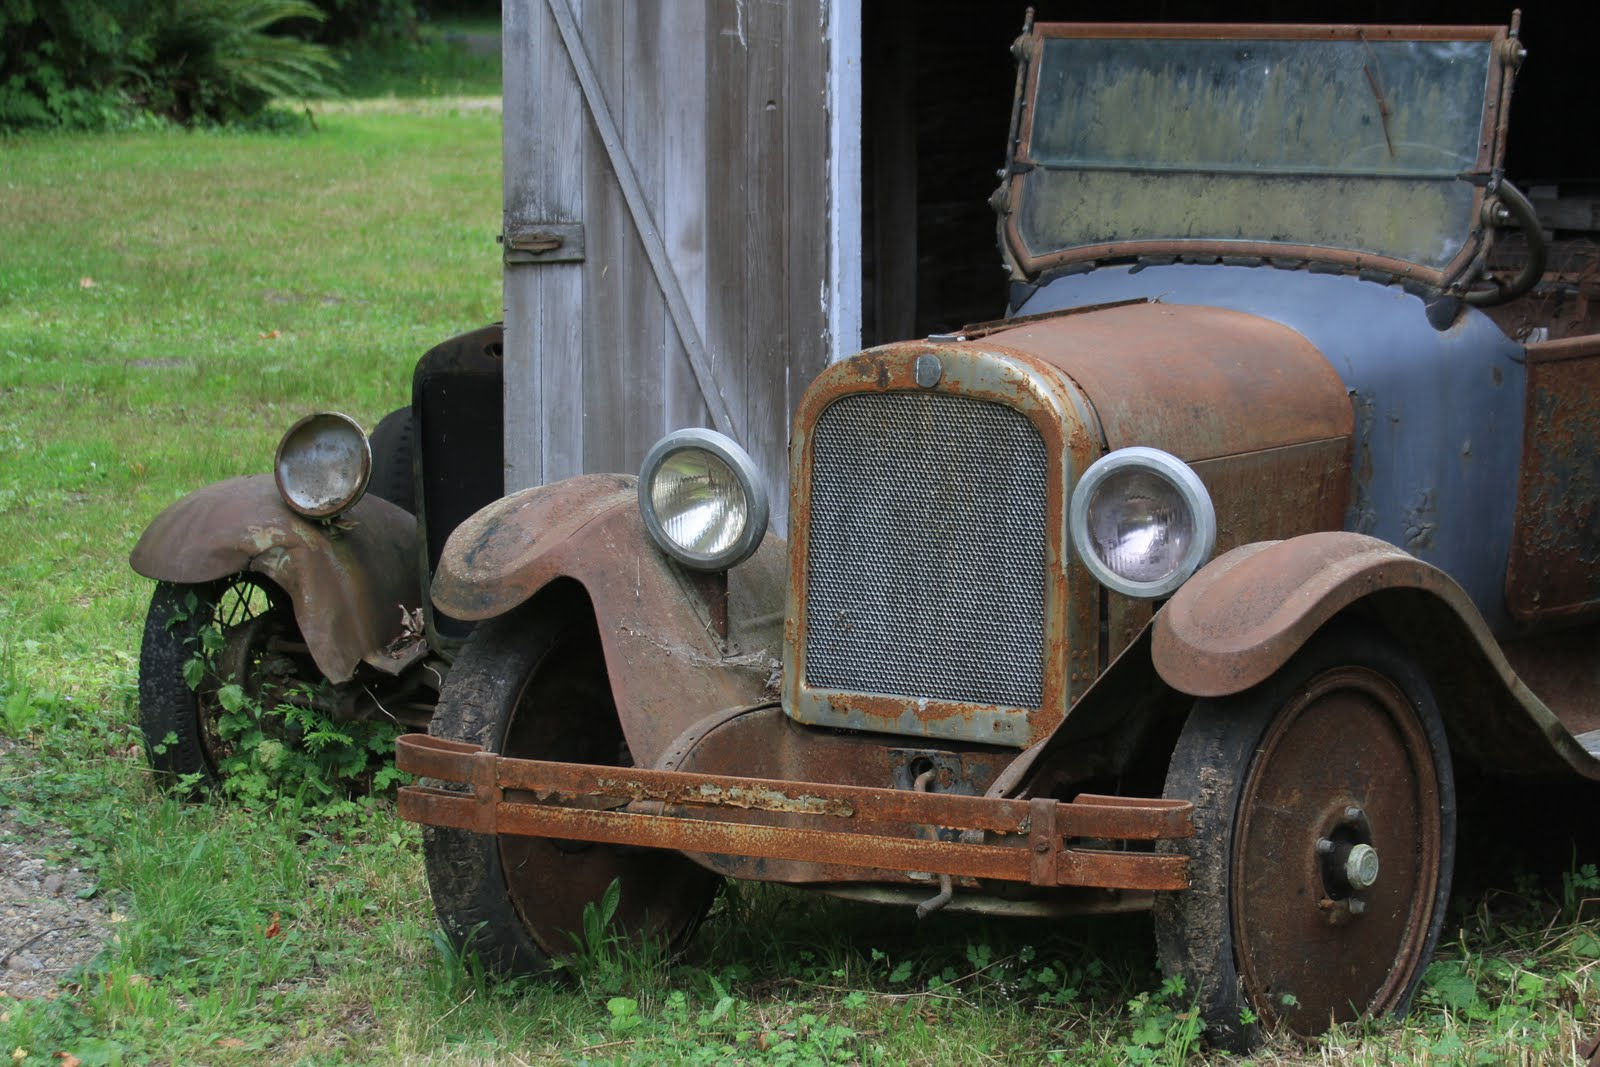 Serendipity and Orchids: More Derelict Vehicles